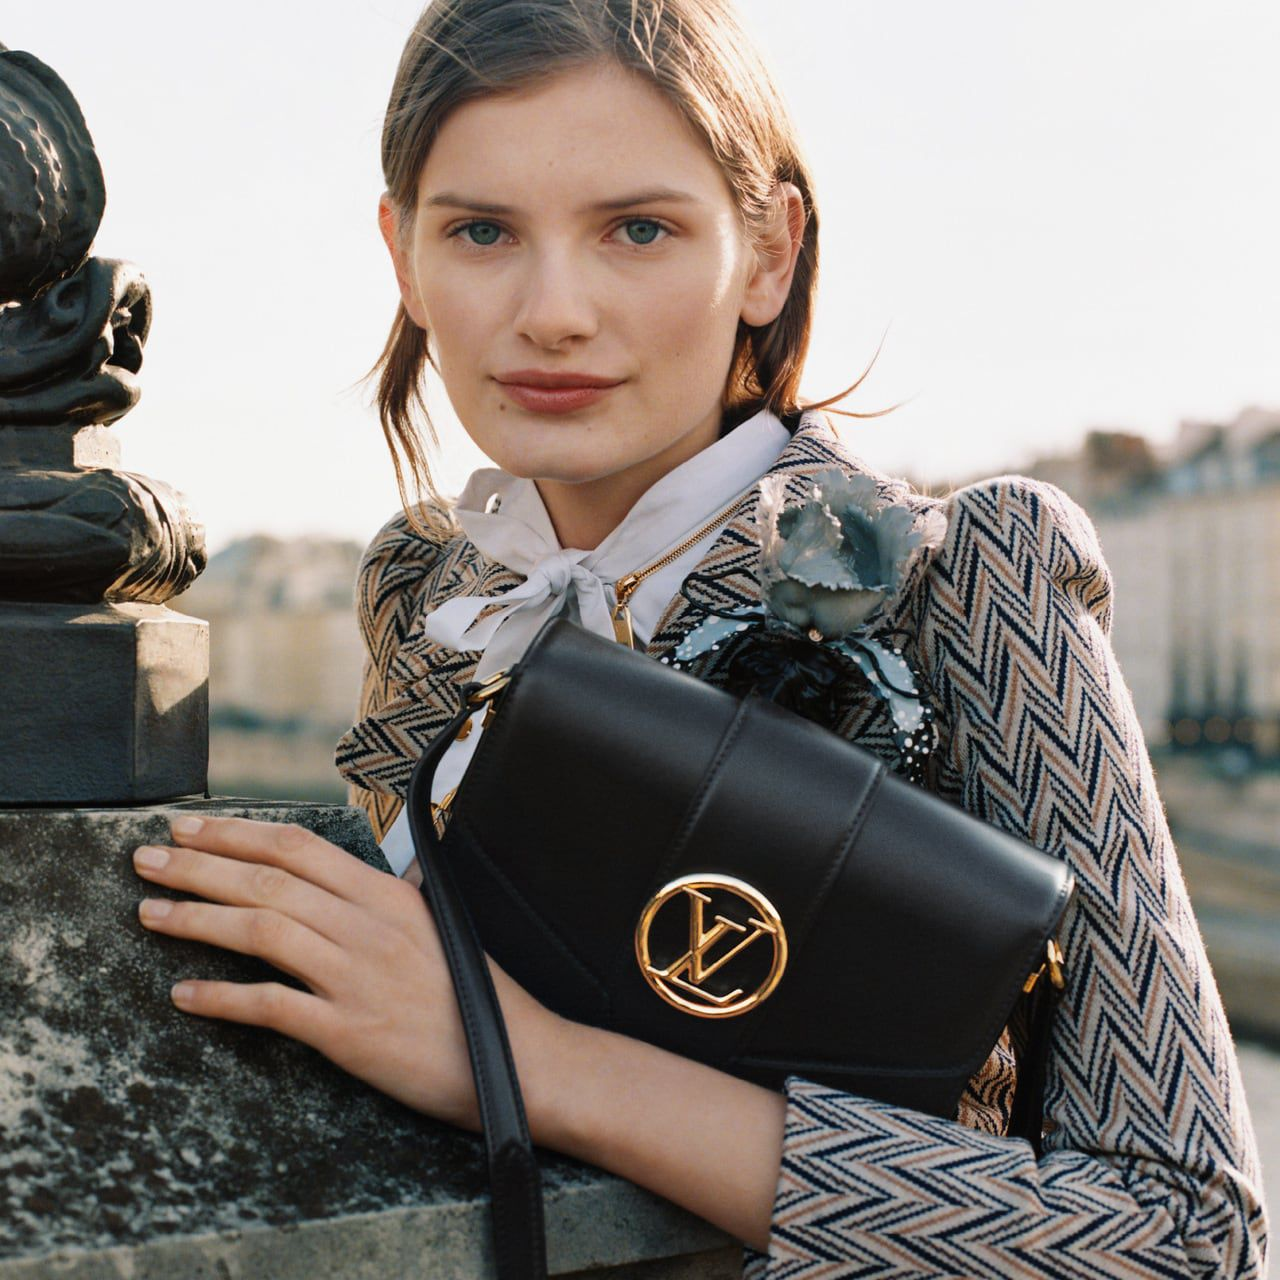 A NEW CLASSIC, THE LV PONT 9 BAG by LOUIS VUITTON